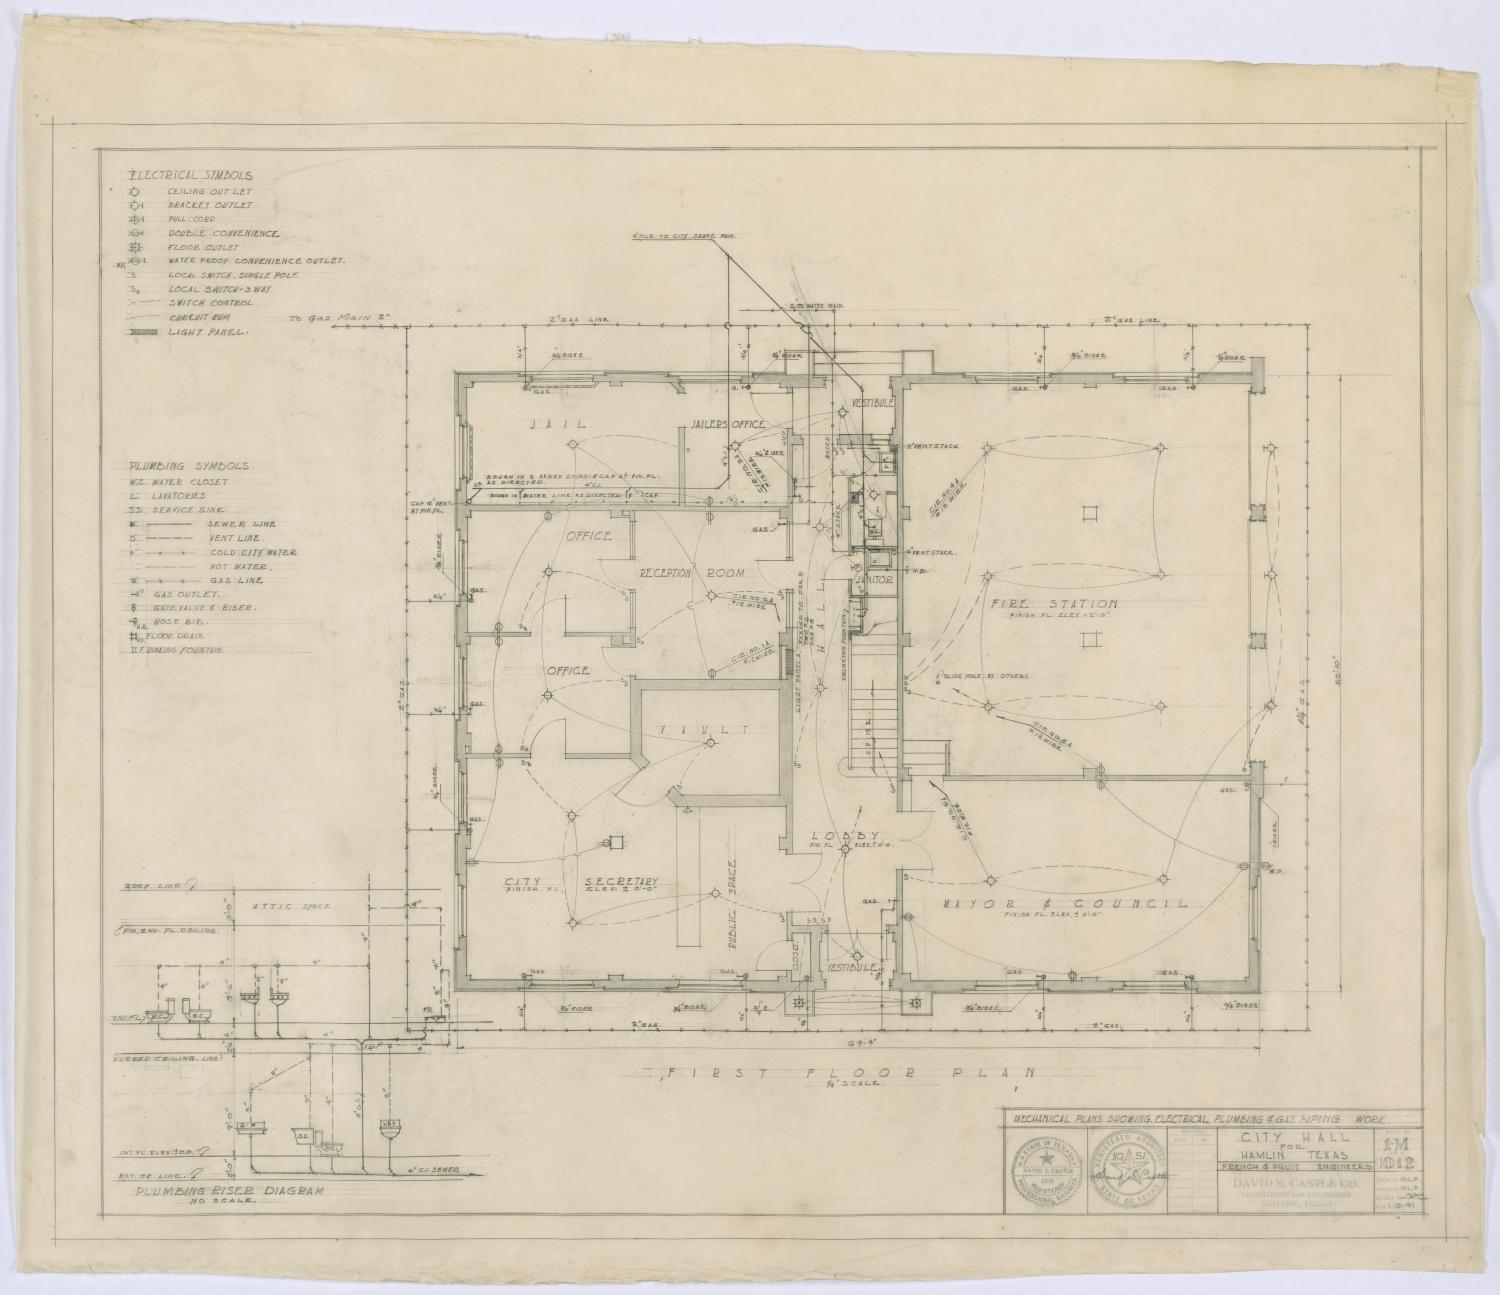 Hamlin City Hall: Electrical, Plumbing, and Gas Piping Plans